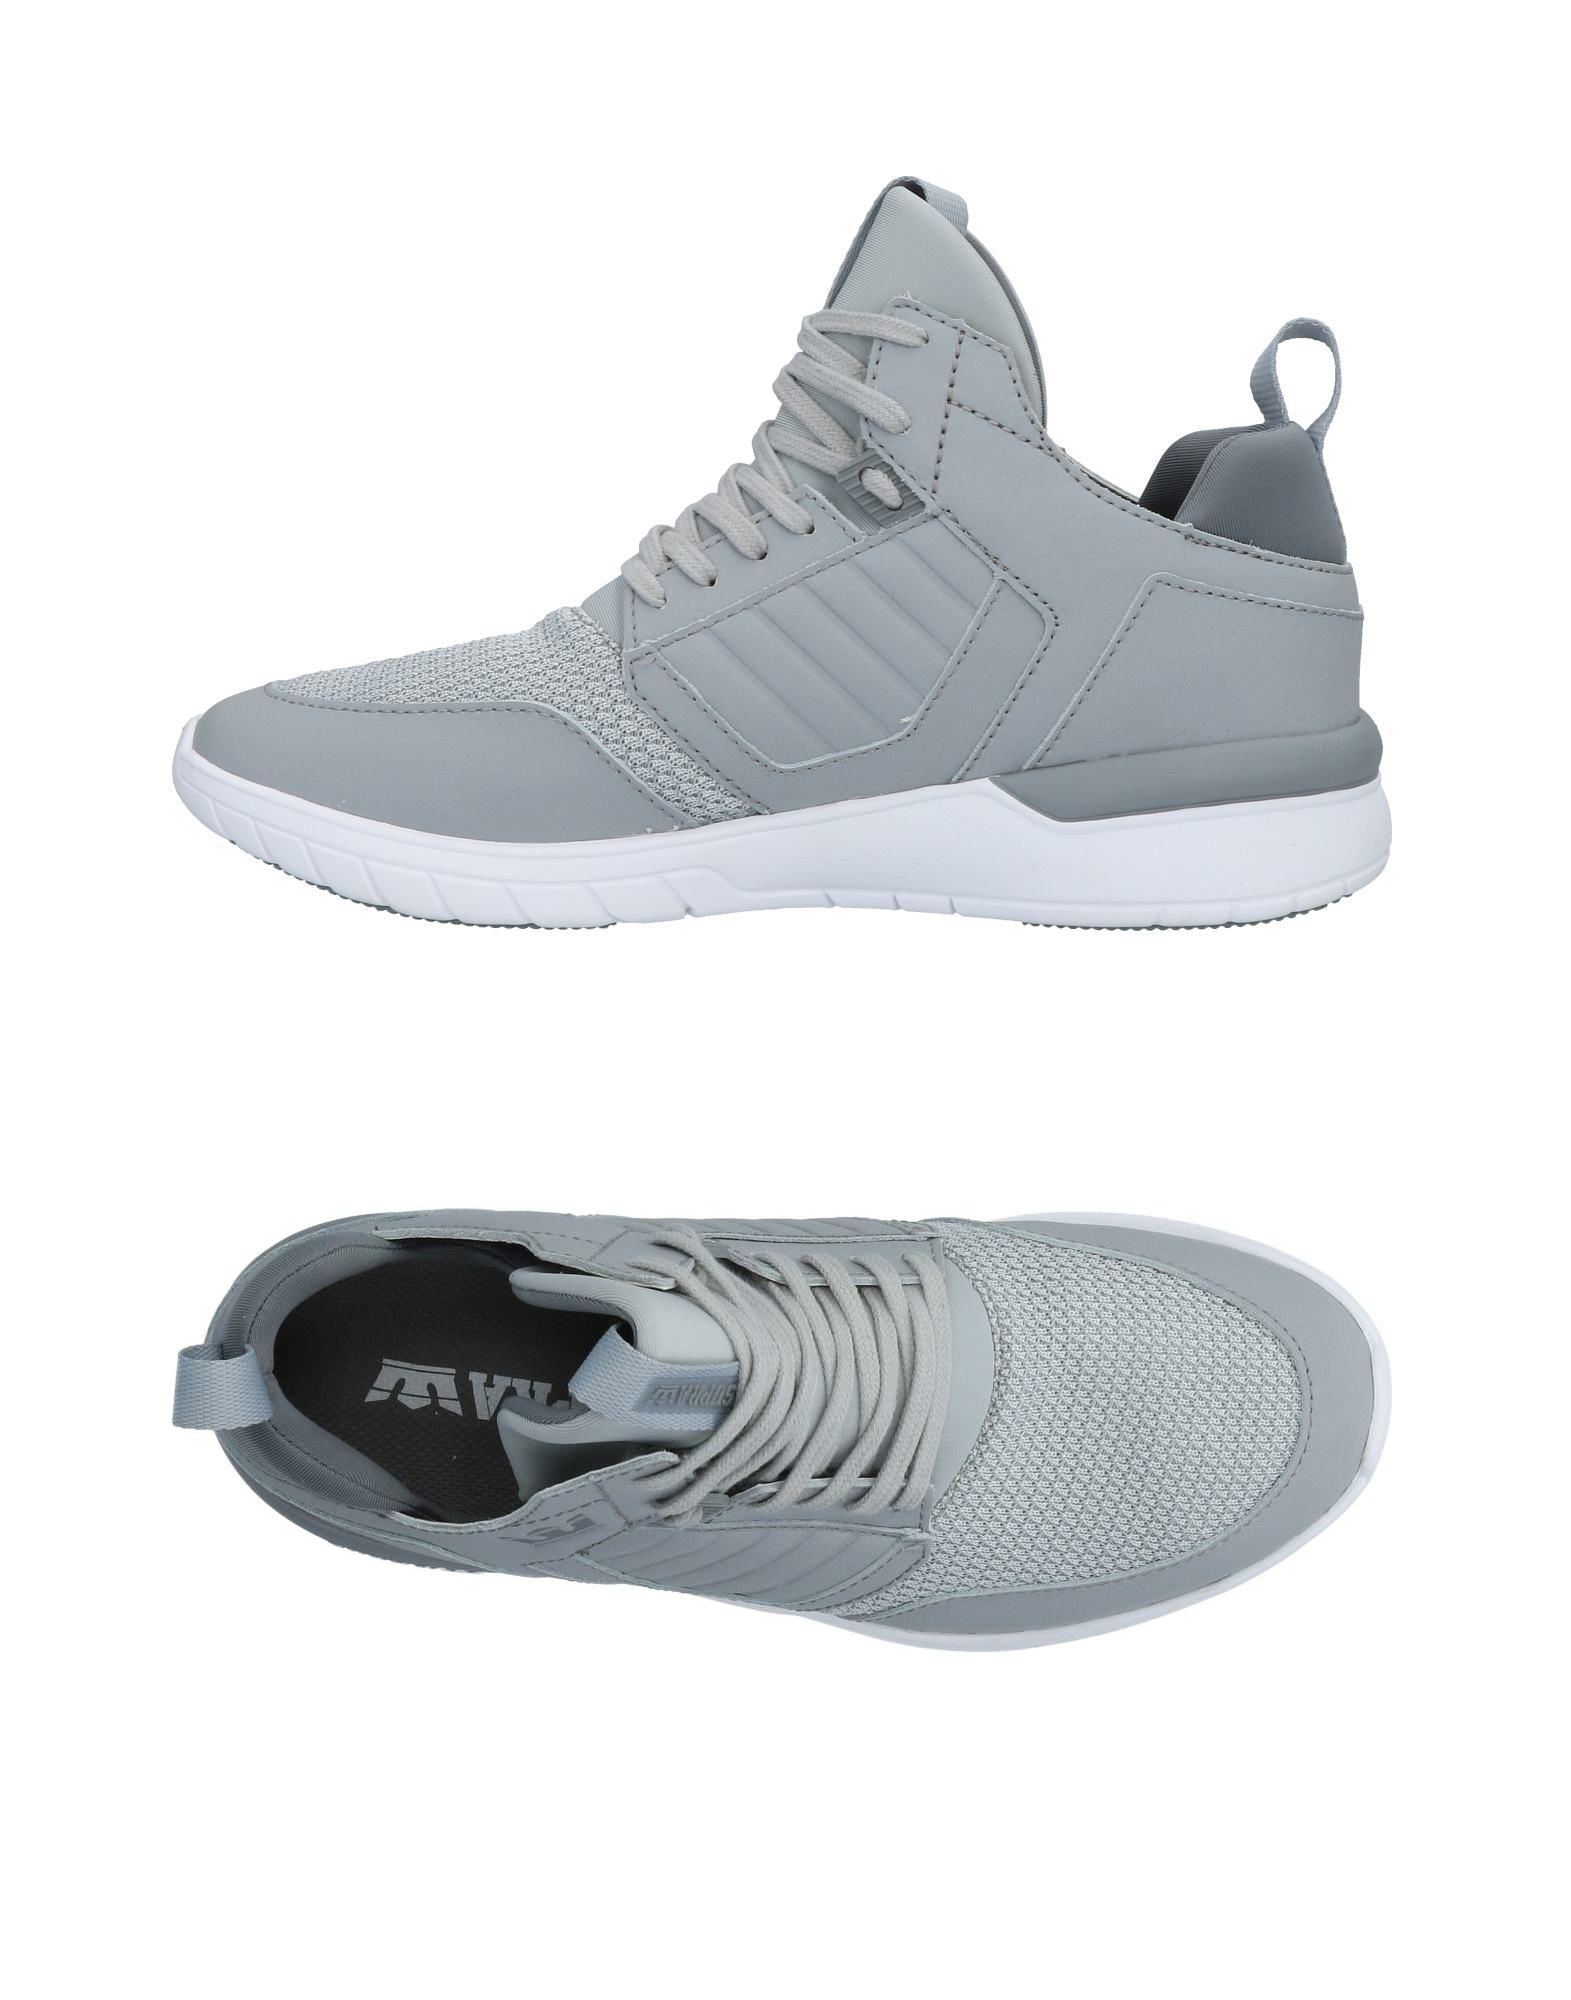 Supra on Sneakers - Men Supra Sneakers online on Supra  Australia - 11473596FL e00899